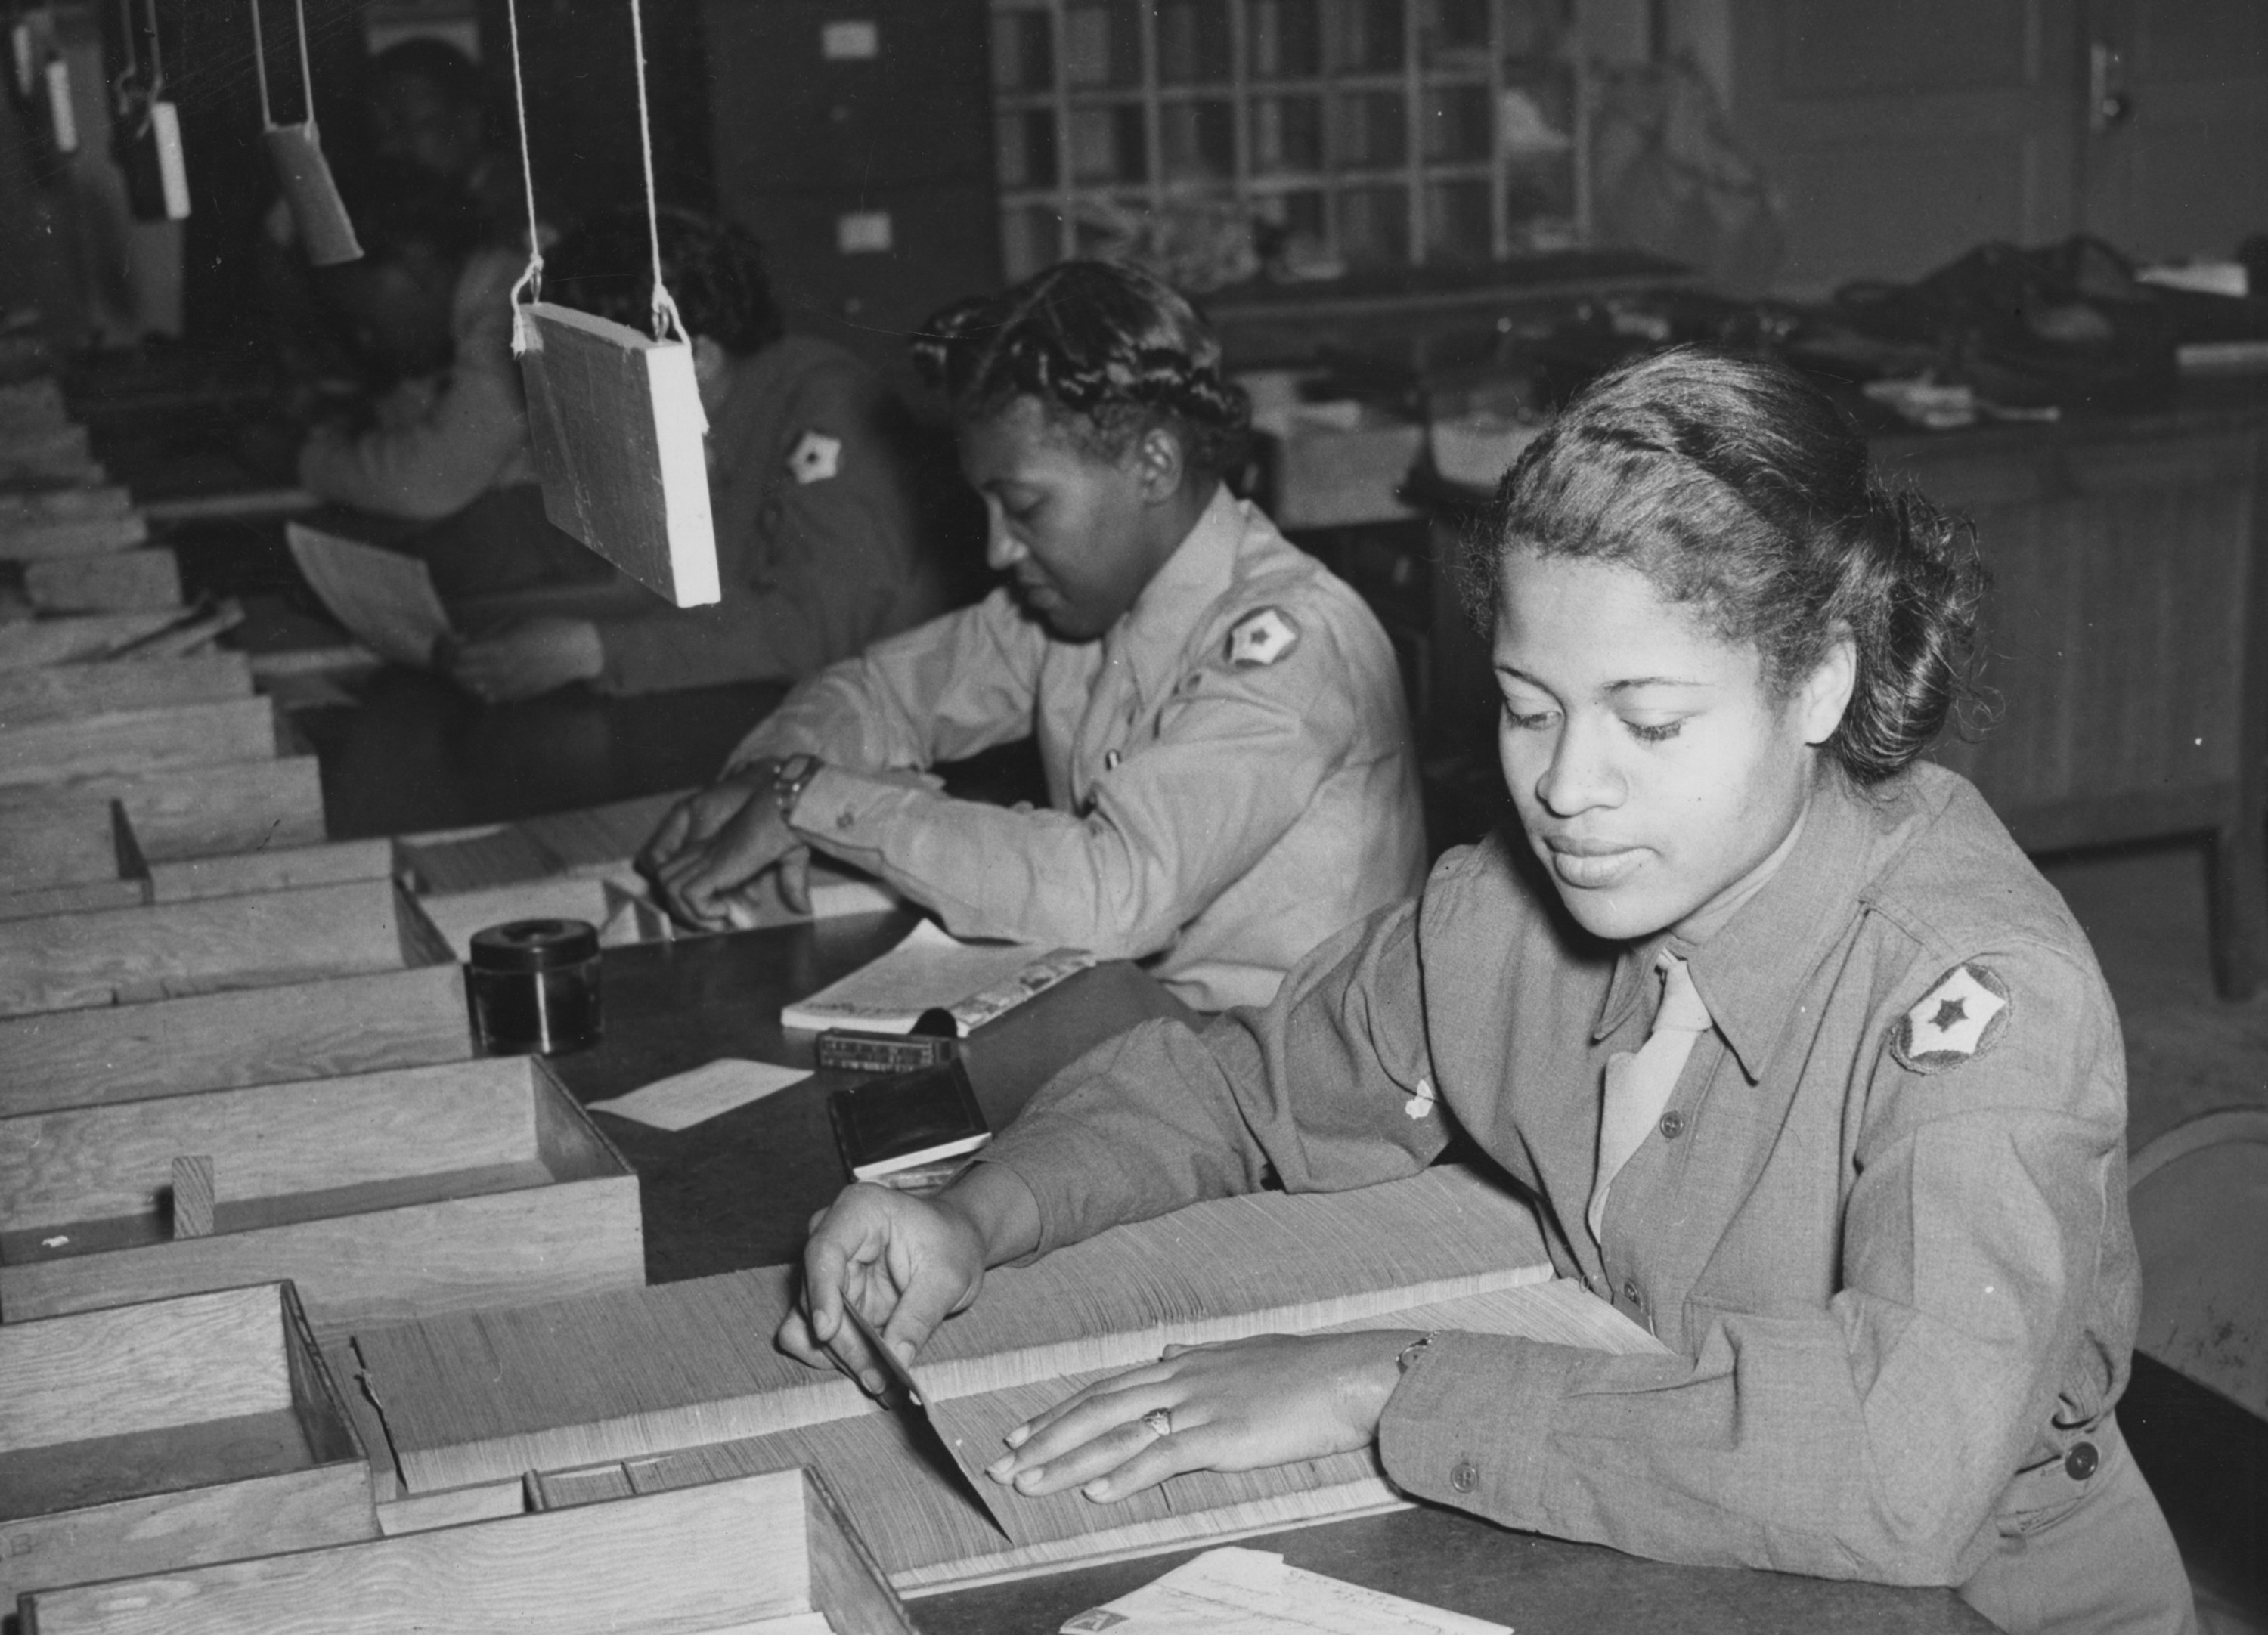 Two black women in military uniforms sort mail